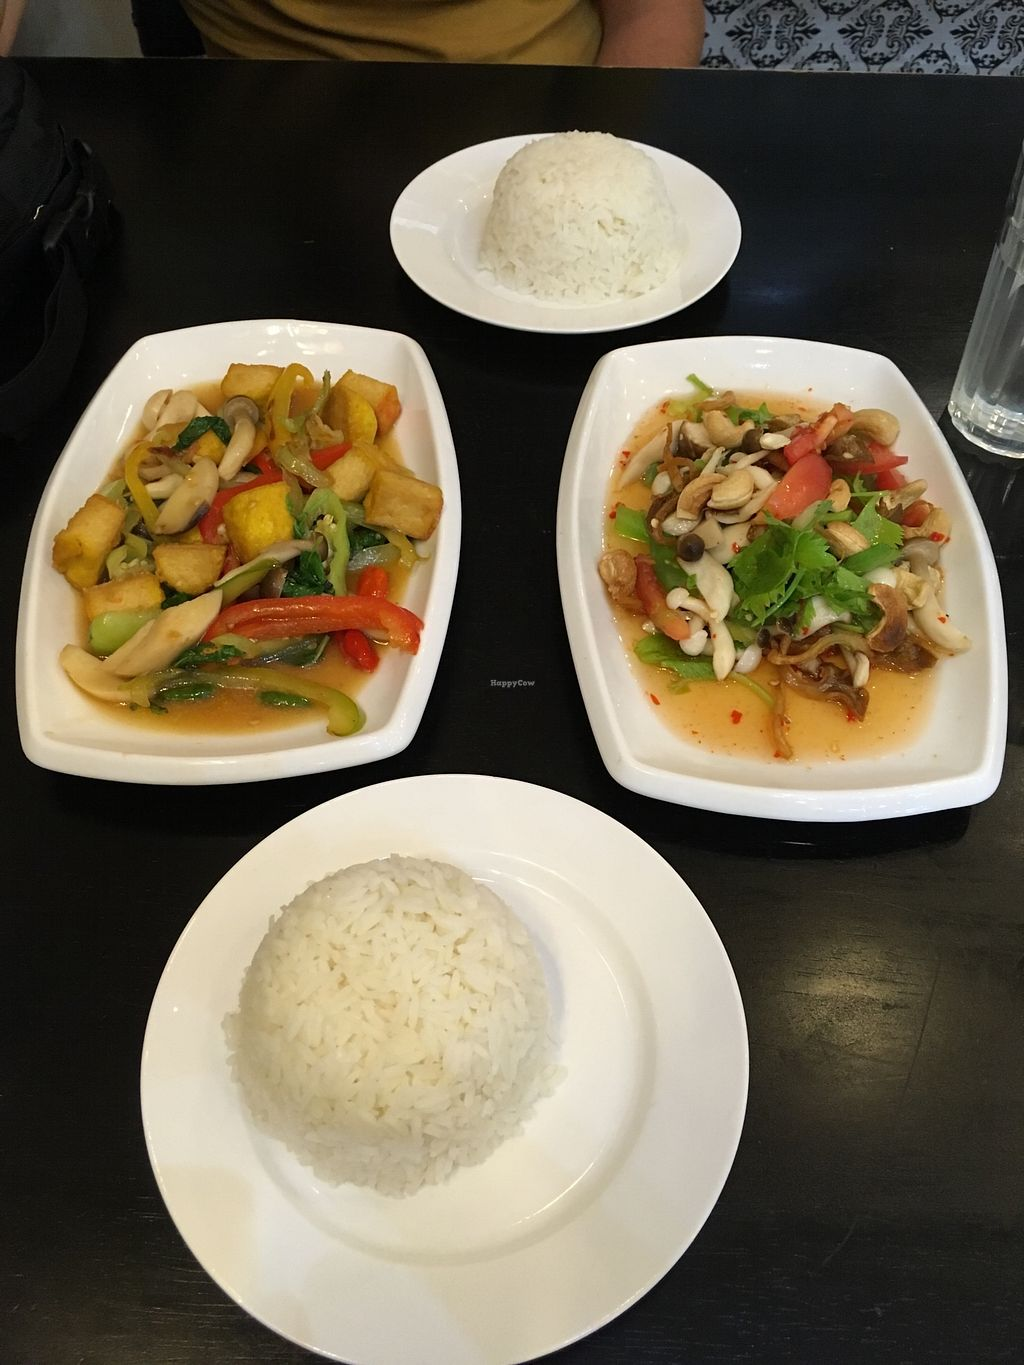 """Photo of The Plumber  by <a href=""""/members/profile/_zelisa"""">_zelisa</a> <br/>Sweet and sour veggies with tofu and green noodles with mushrooms and veggies  <br/> November 26, 2017  - <a href='/contact/abuse/image/105833/329382'>Report</a>"""